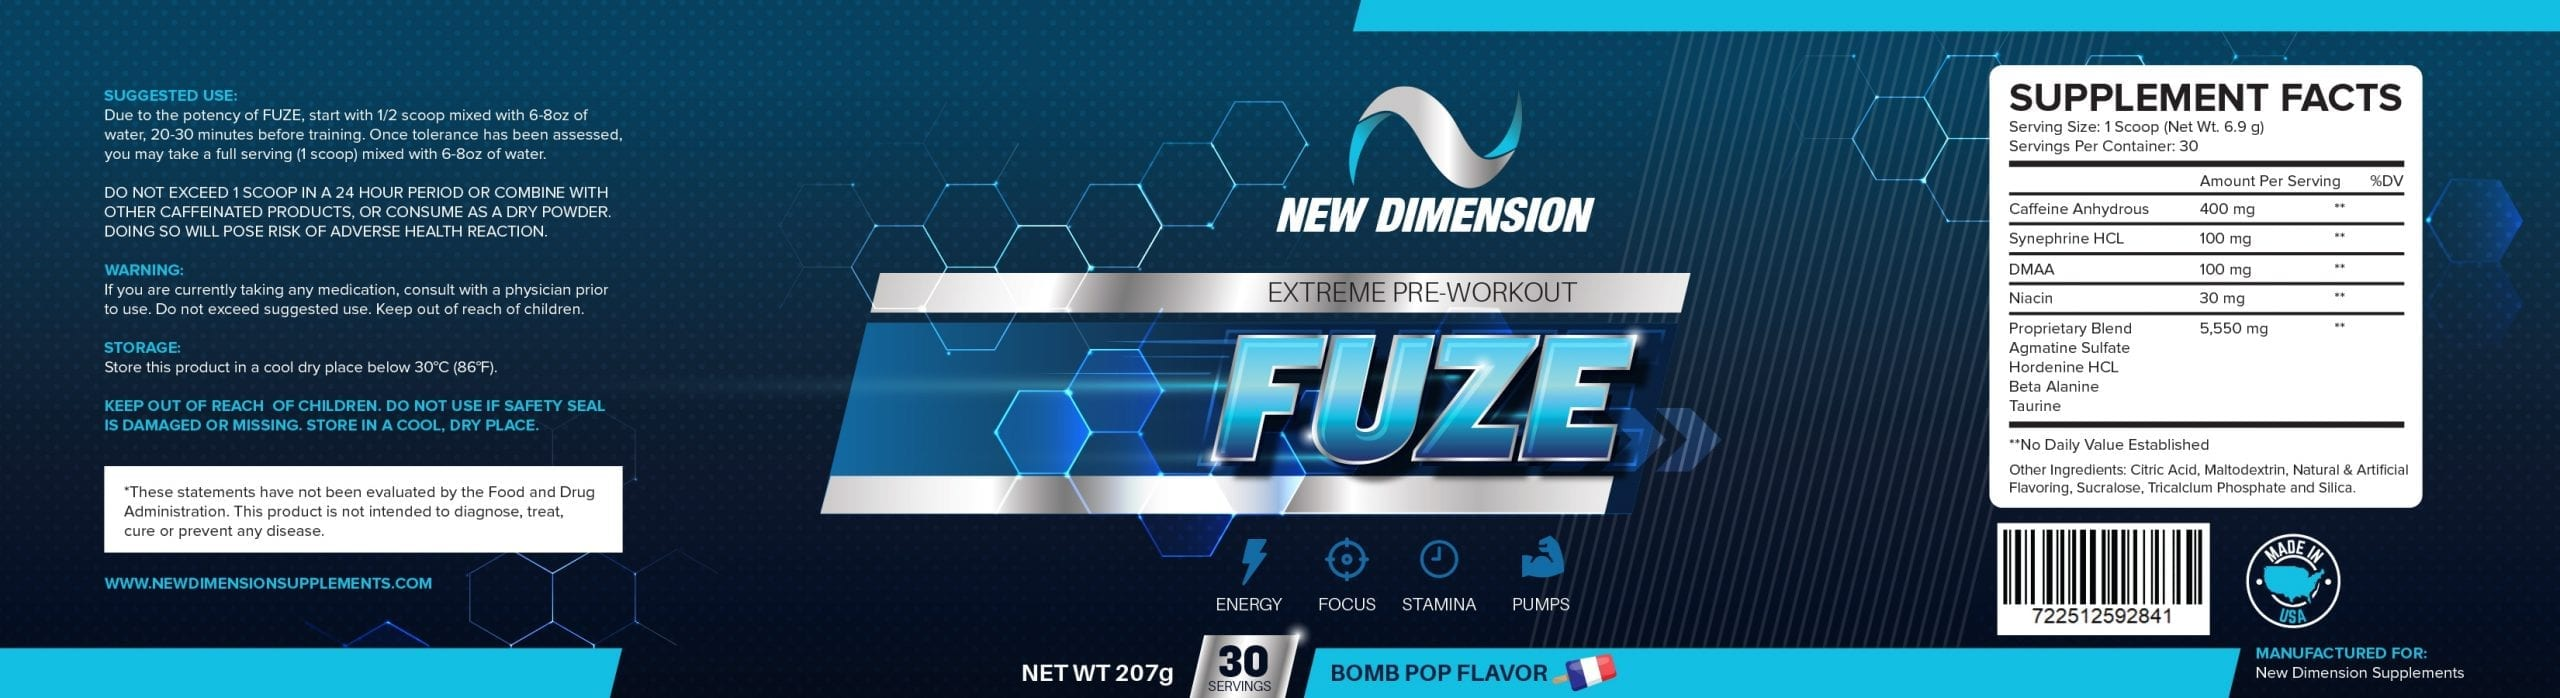 FUZE Pre-Workout Supplement Facts By New Dimension Supplements